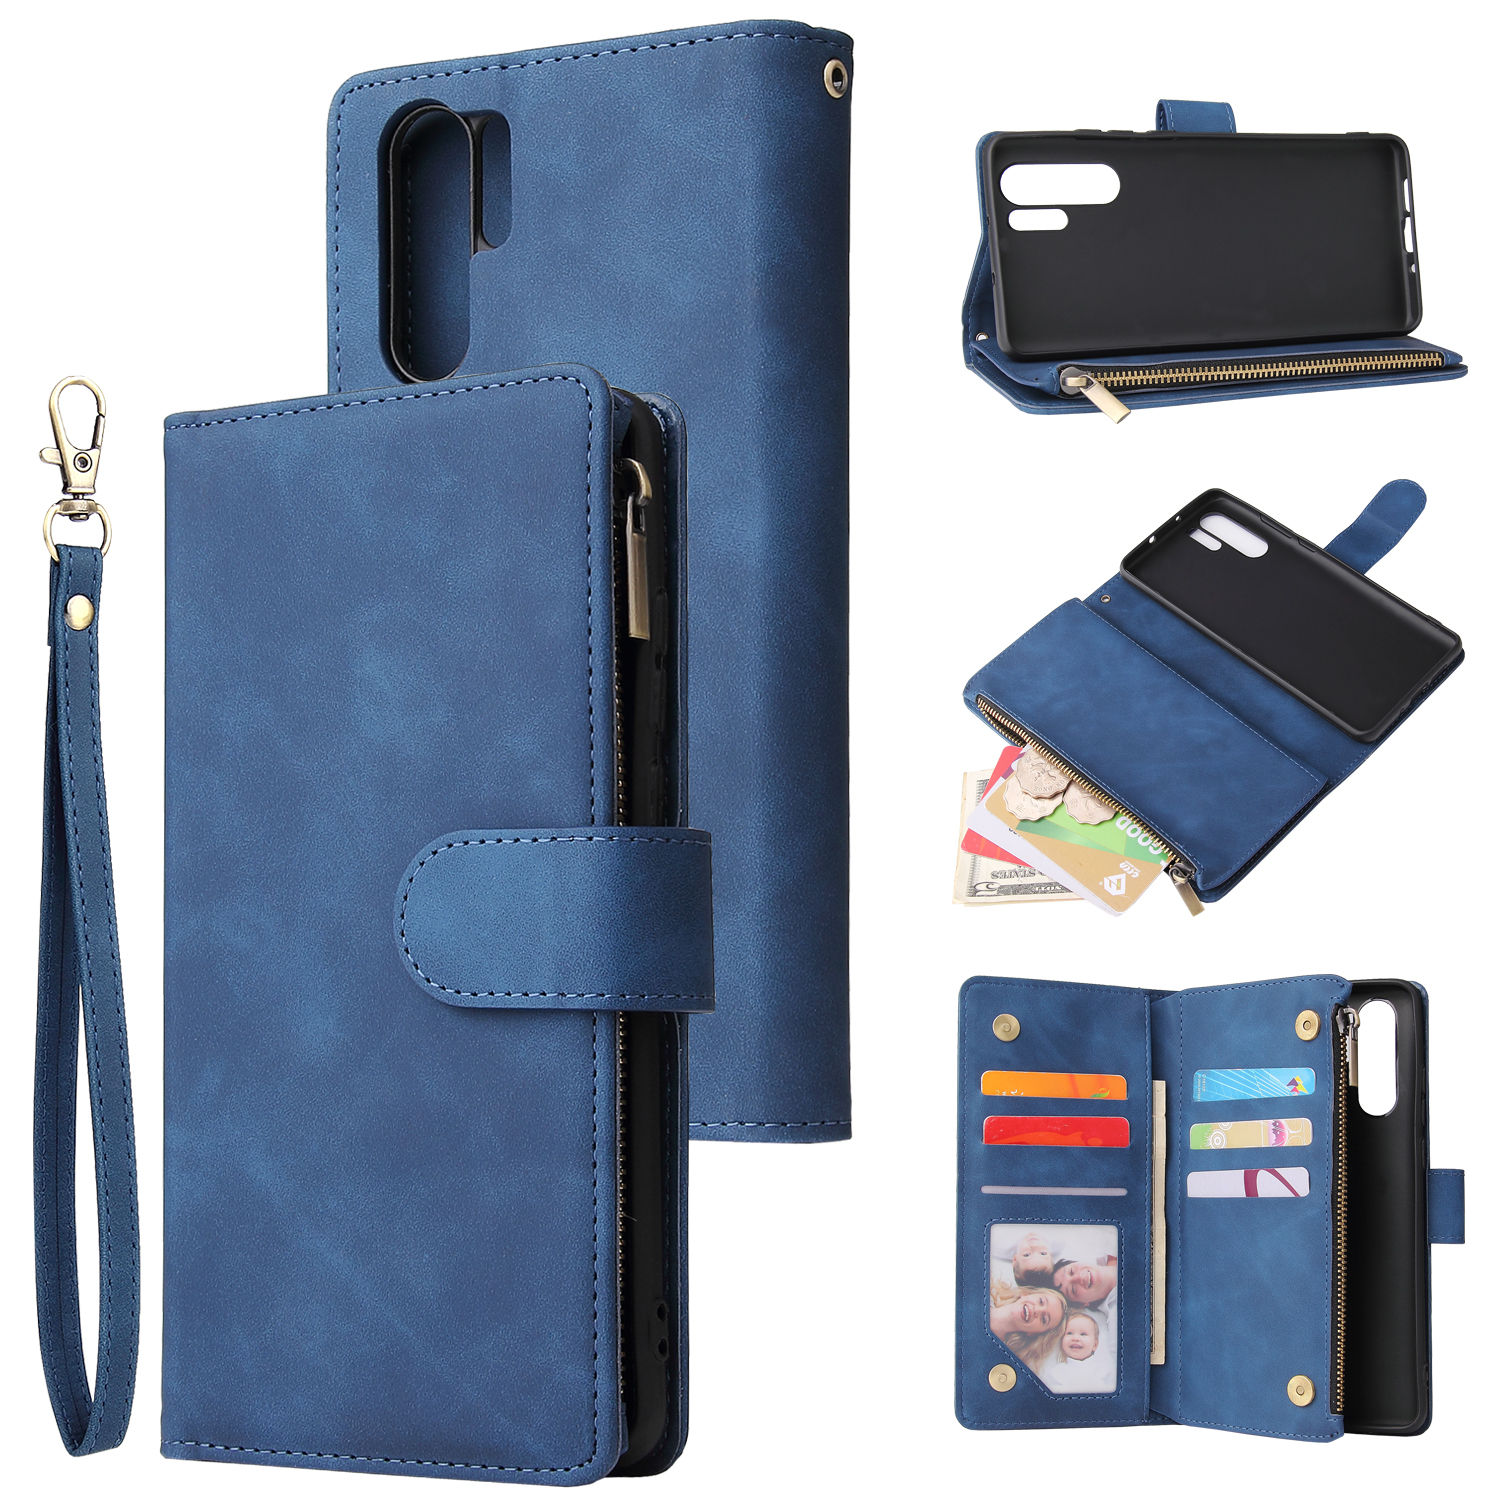 For HUAWEI P30 HUAWEI P30 lite HUAWEI P30 pro Multi-card Bracket Coin Wallet Zipper Mobile Phone PU Leather Phone Case  2 blue